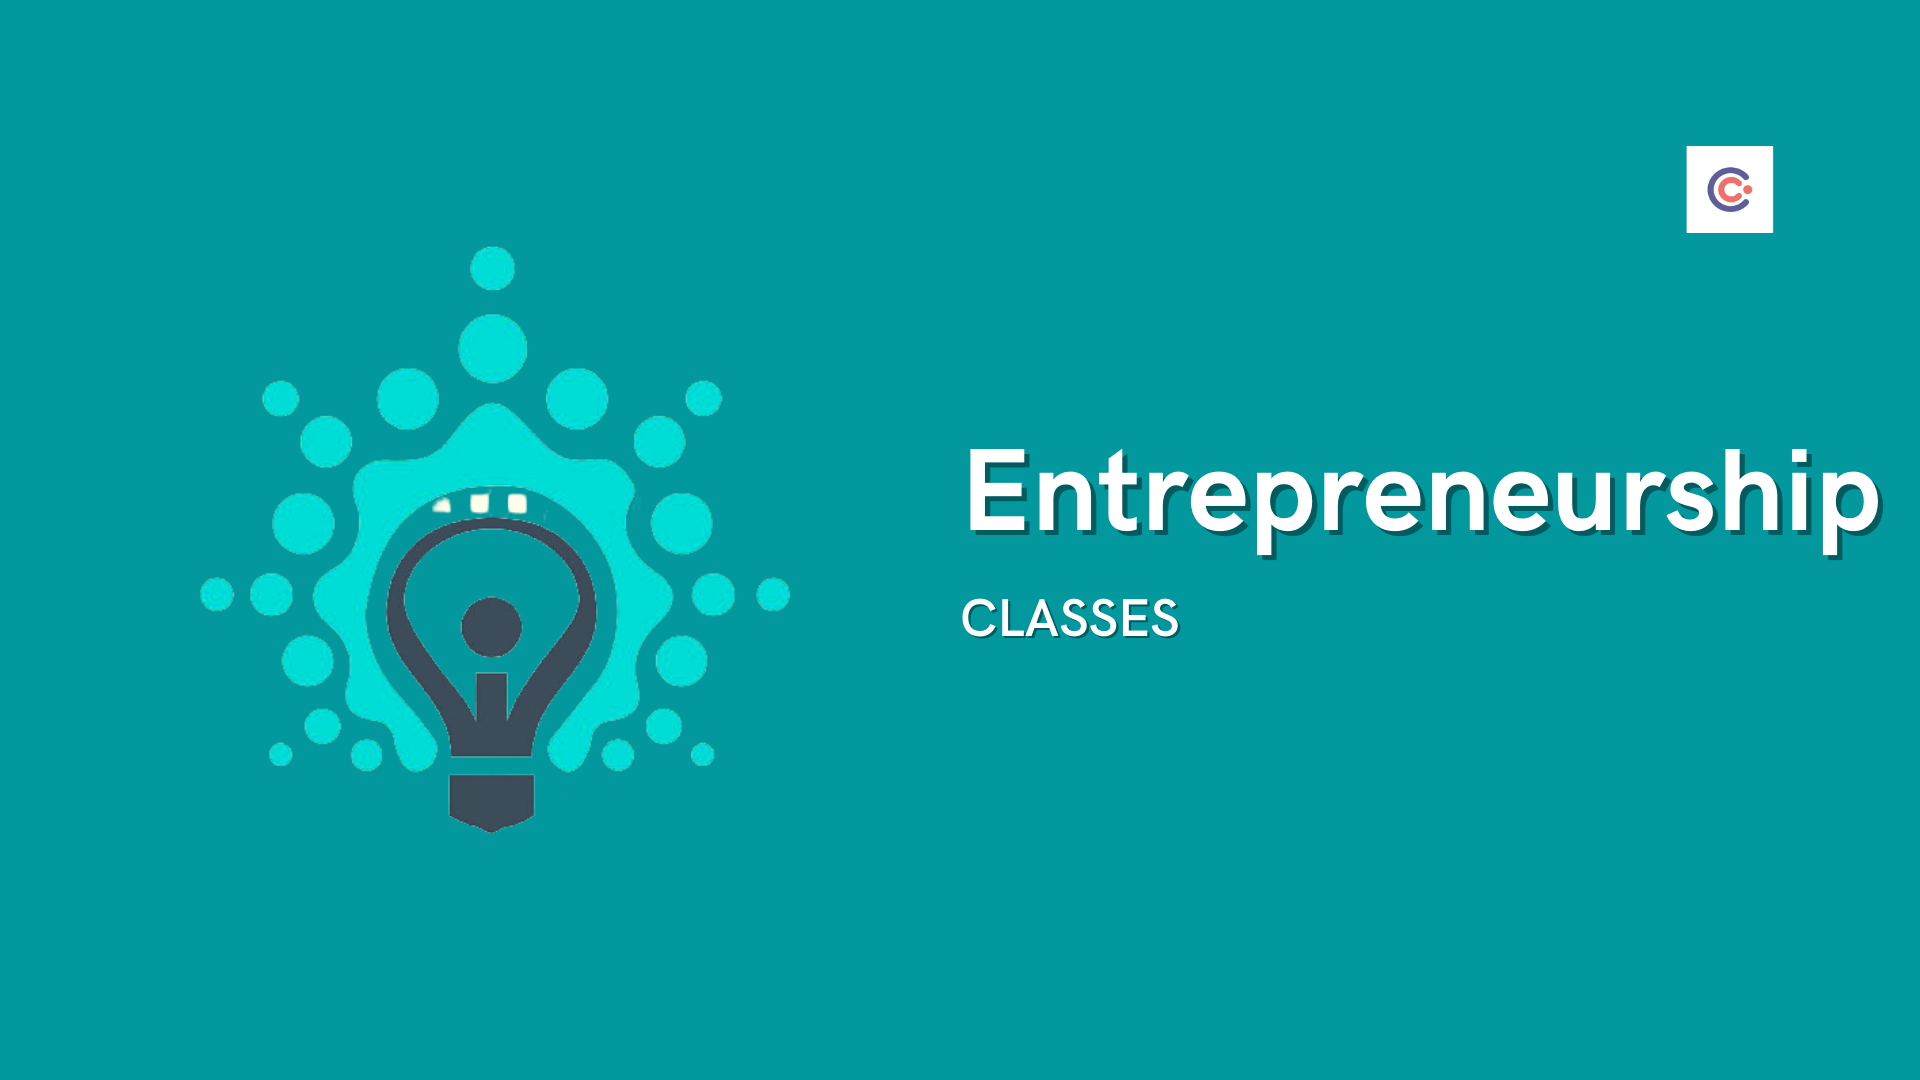 7 Best Entrepreneurship Classes - Learn Entrepreneurship Skills Online